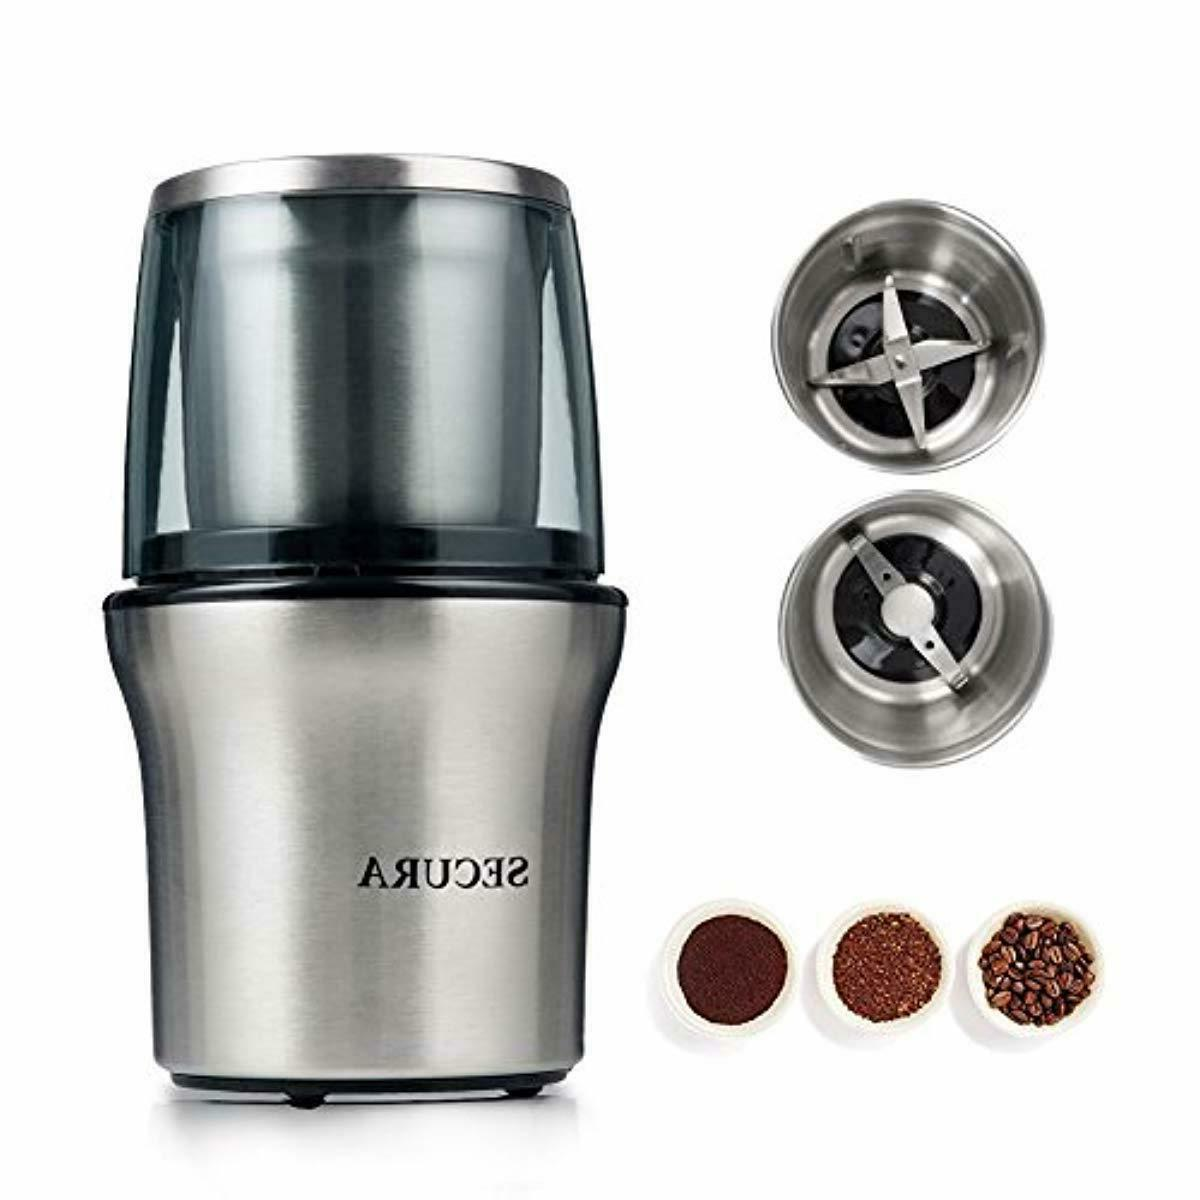 electric coffee grinder spice grinder with 2